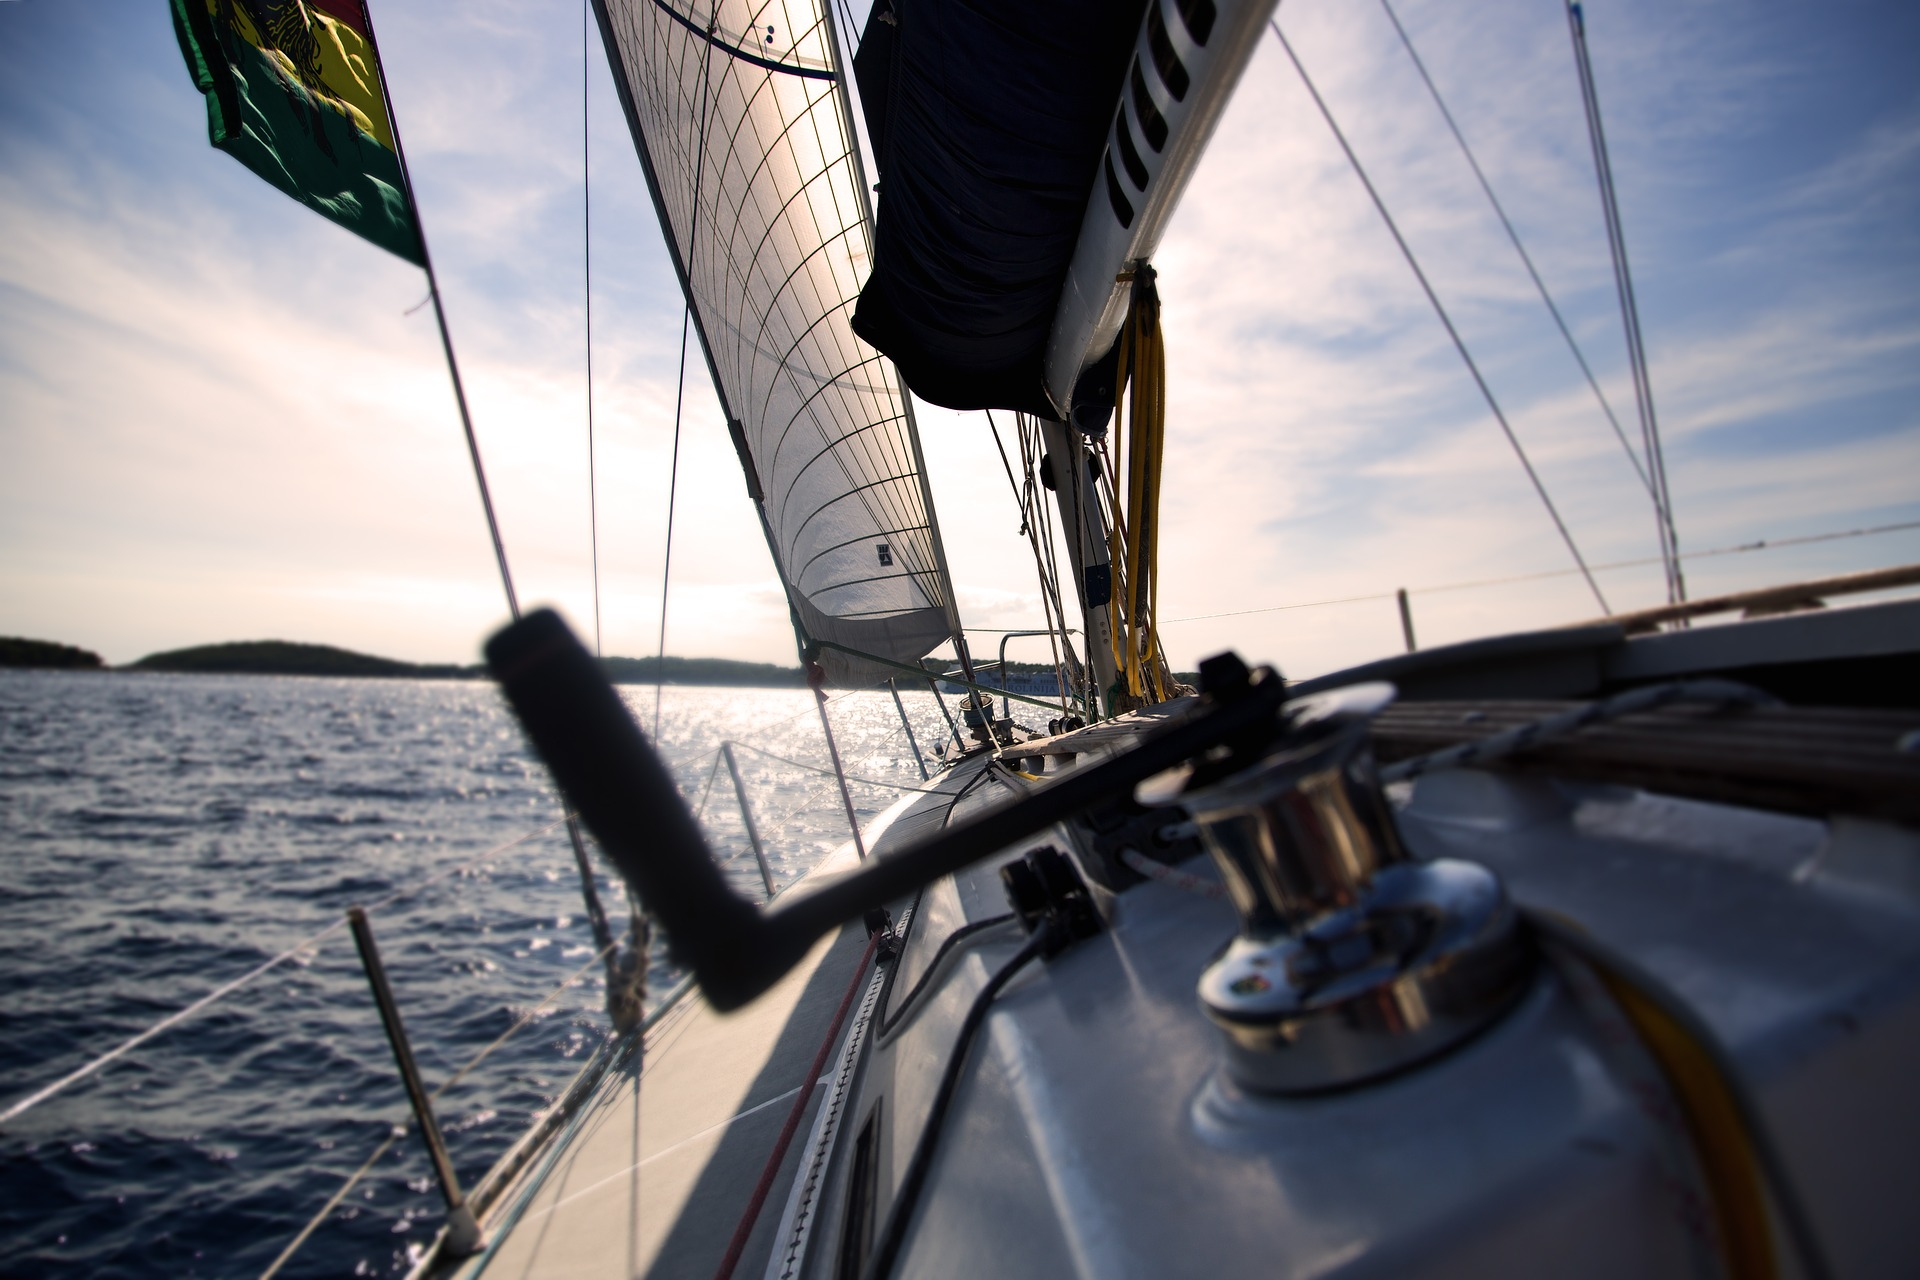 View of a boat foredeck taken from the cockpit. The boat is under sail, over seas heading towards land